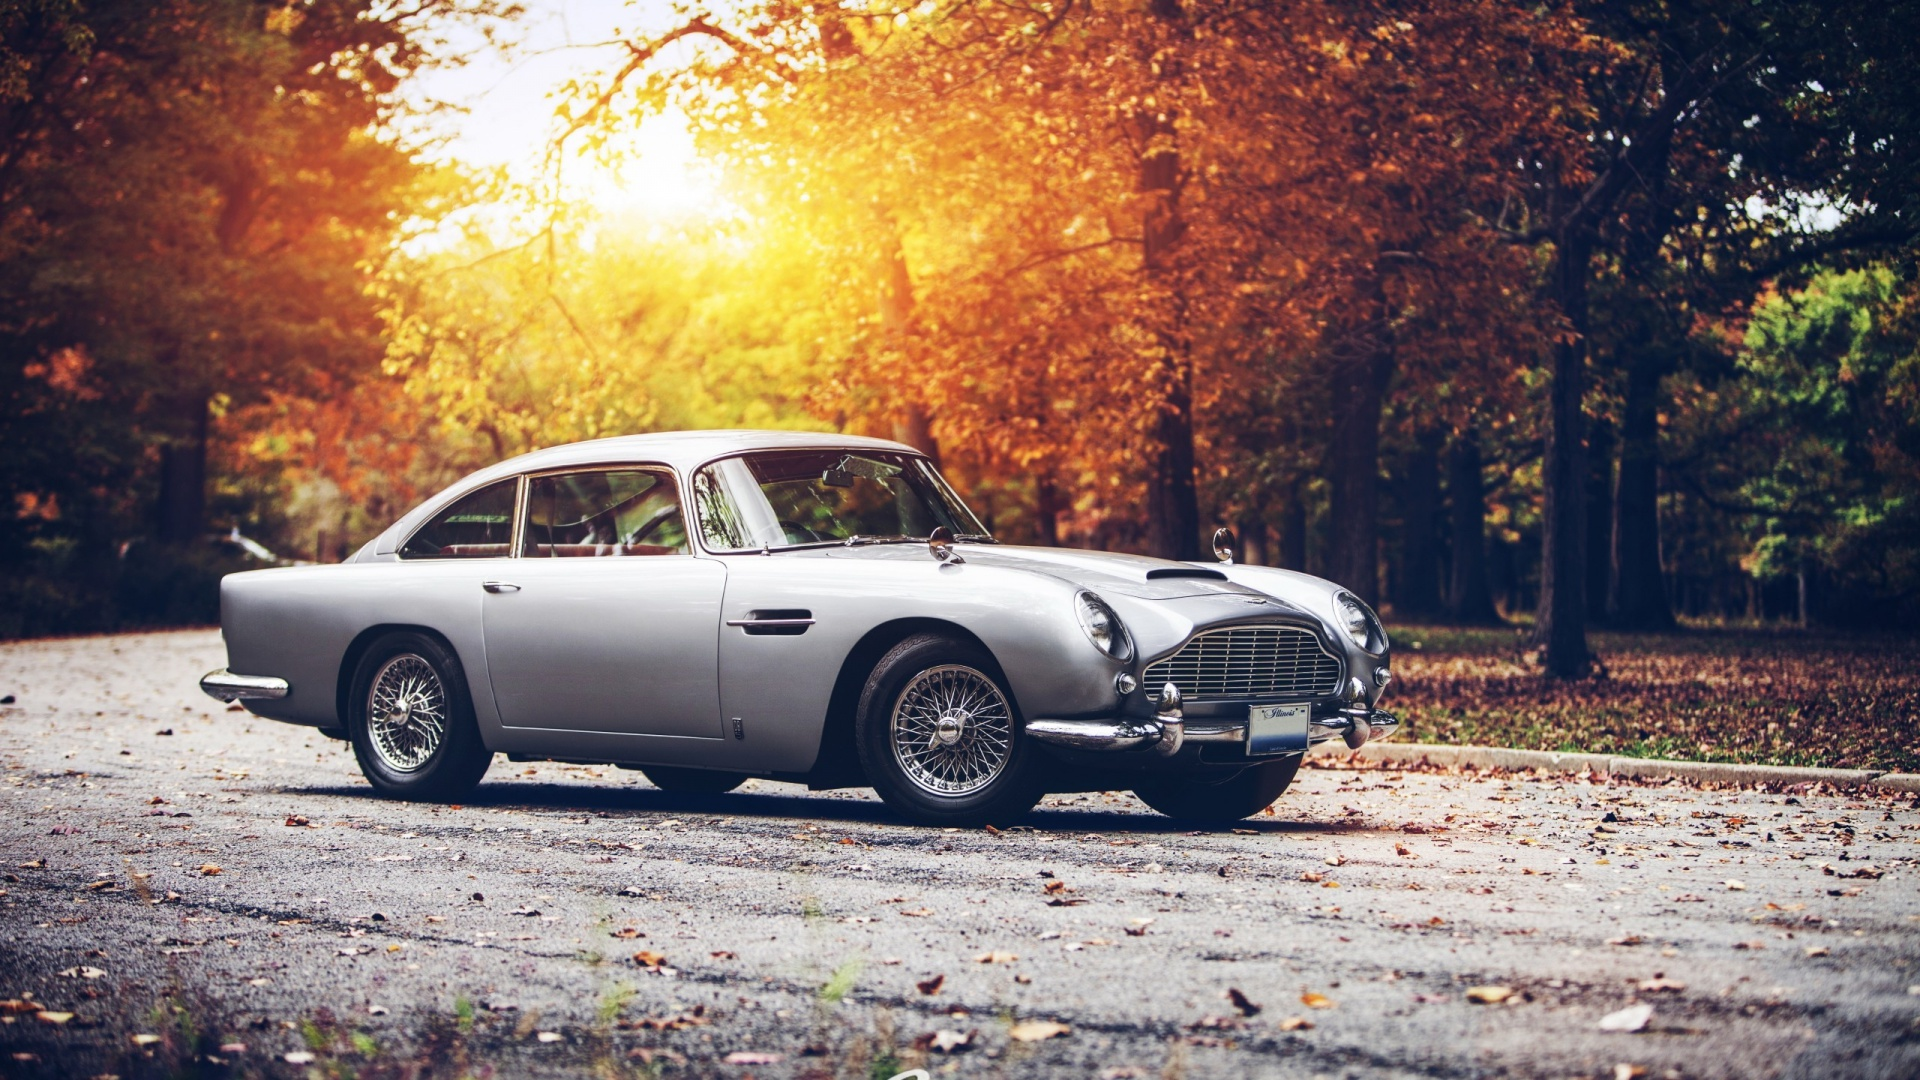 1920x1080 Vintage Aston Martin Db5 Desktop Pc And Mac